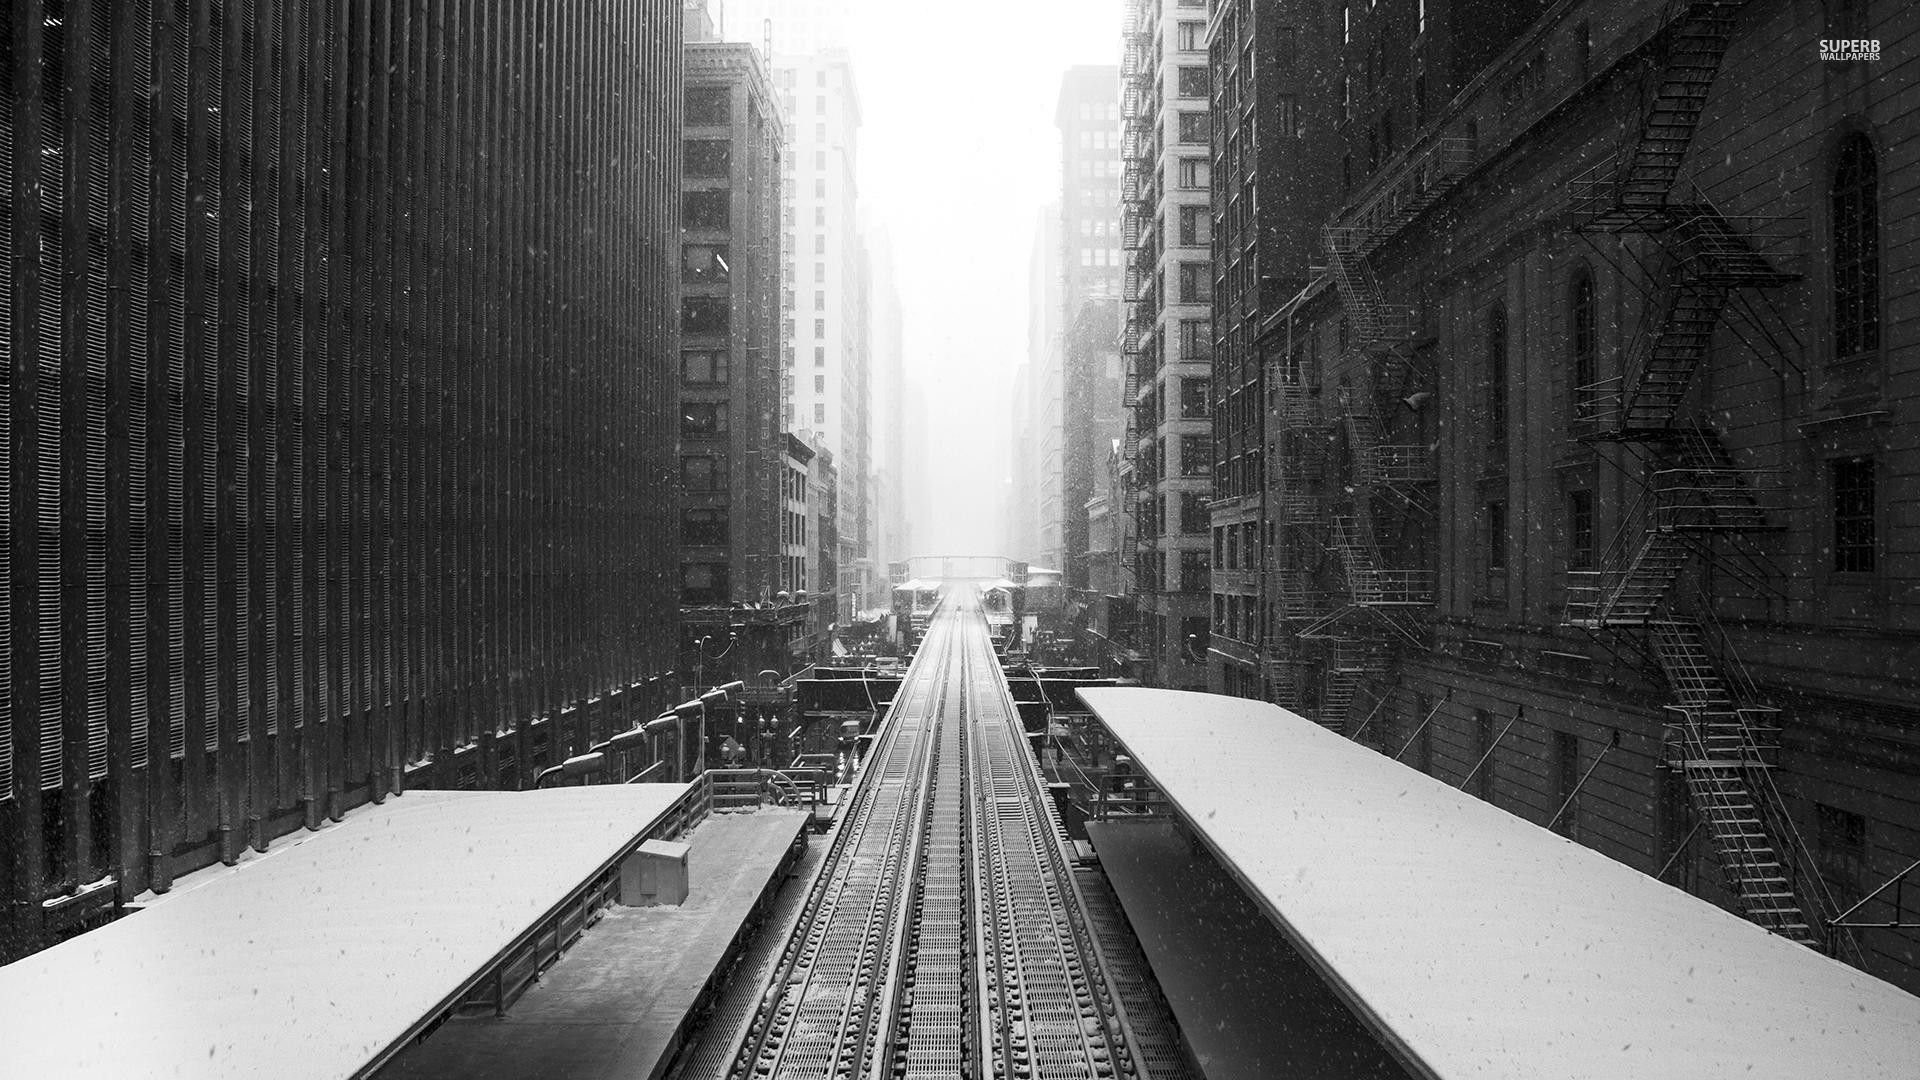 Railroad In The Snowy City …